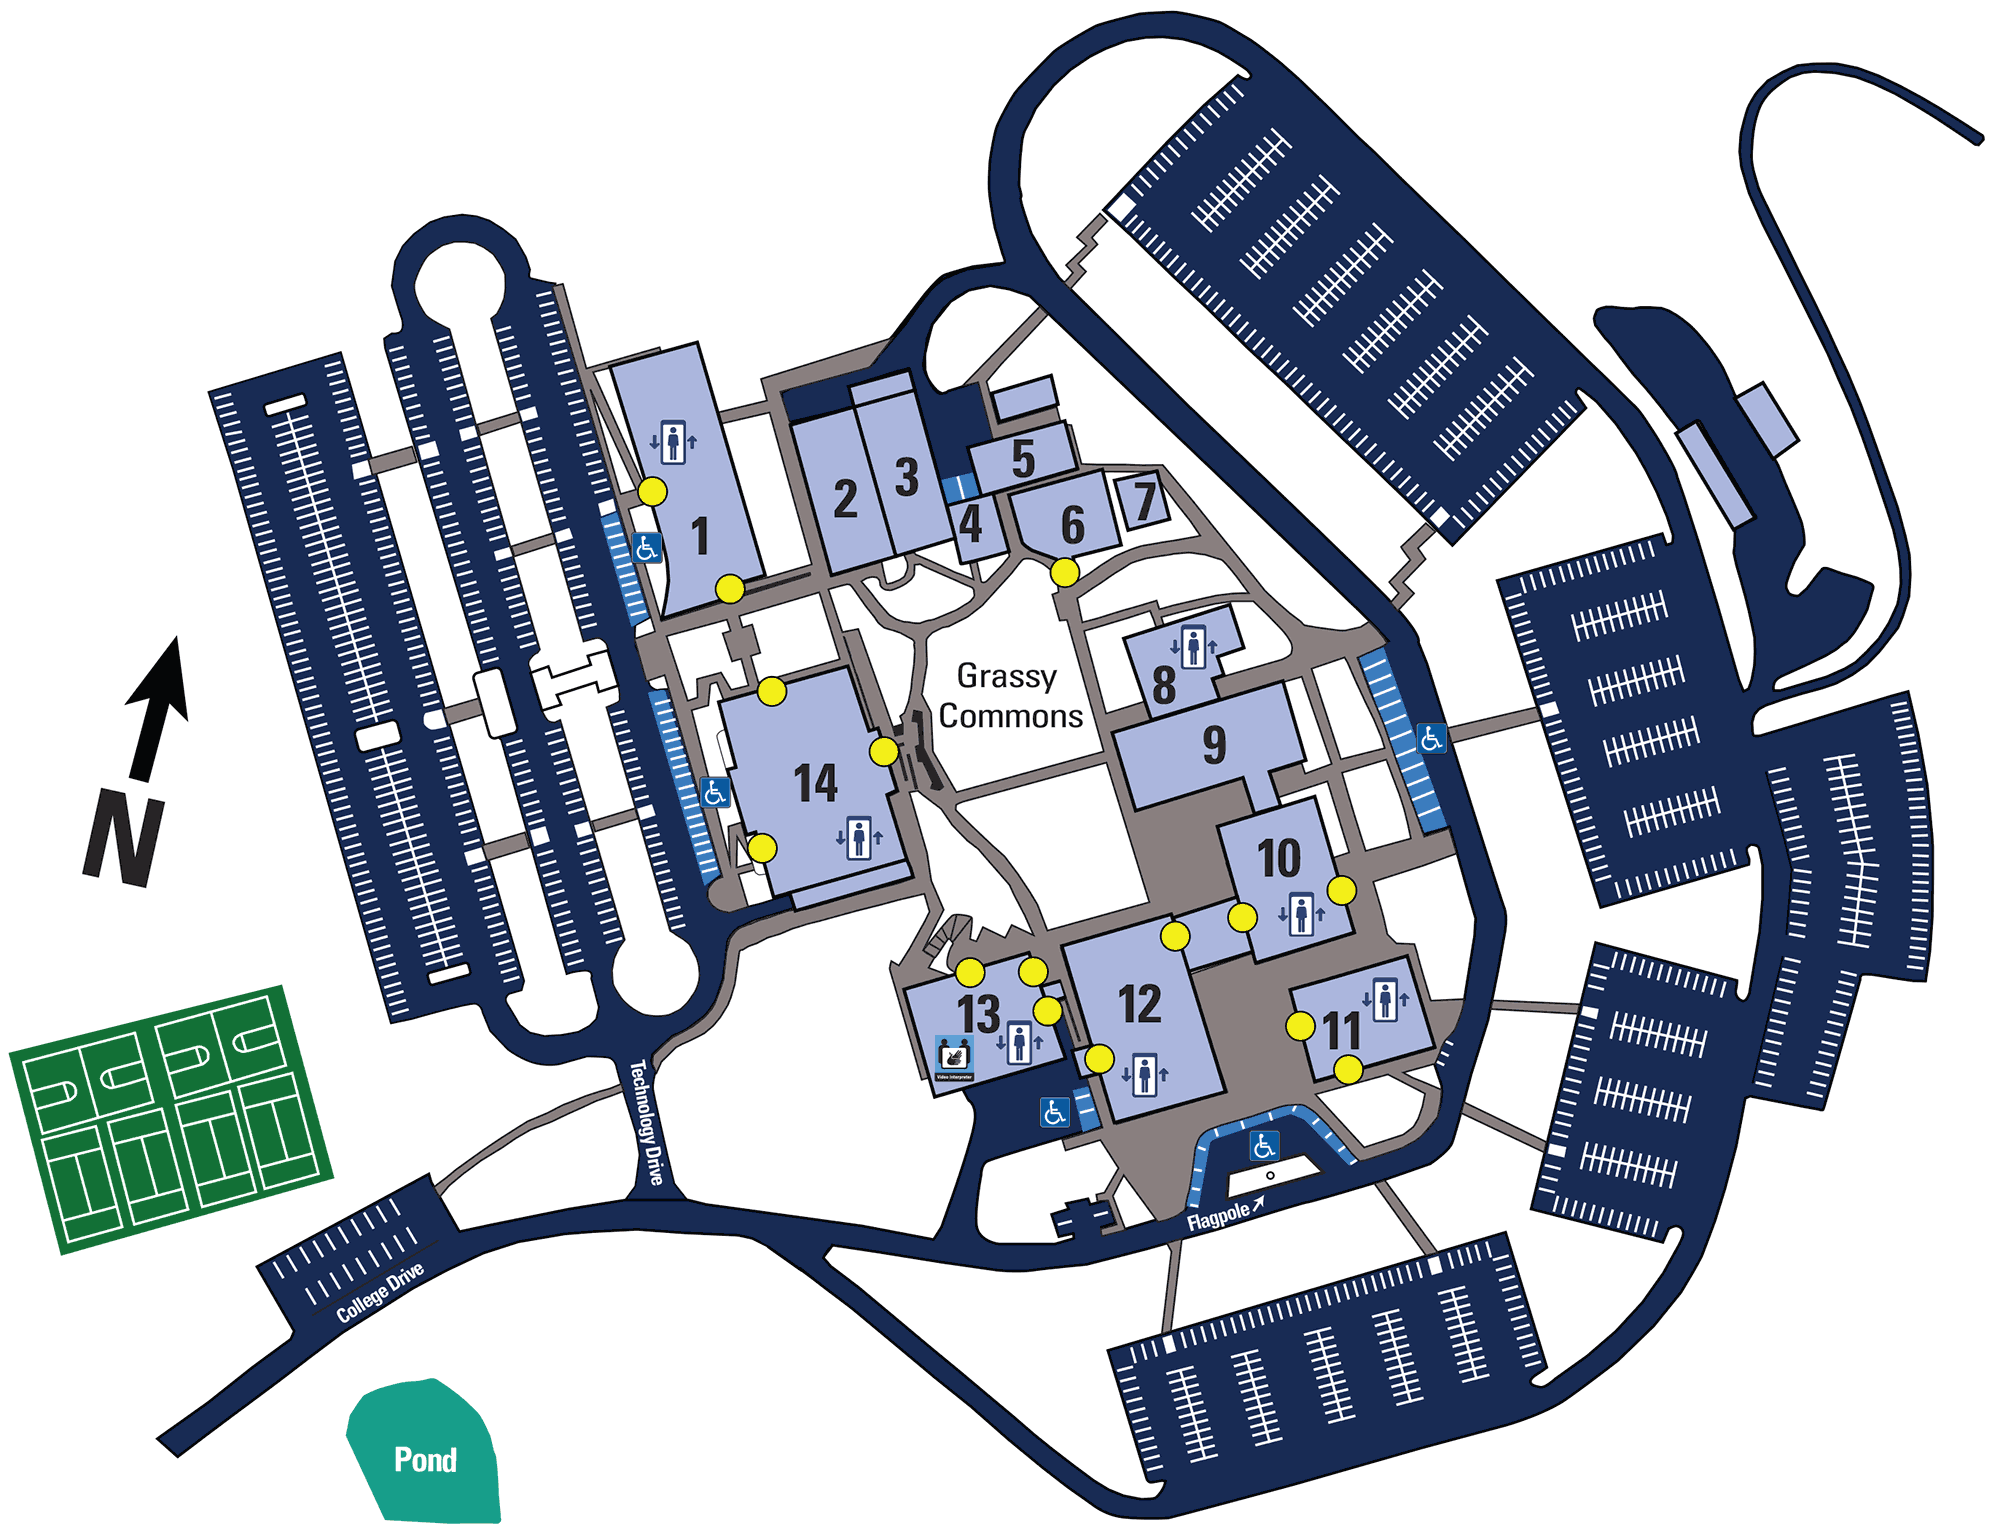 """Birds-eye view of WPCC's main campus showing the layout of 14 buildings that surround the Grassy Commons area which is located in the center. Buildings are numbered in clockwise order, starting at the northwest corner with Carr Hall labeled as """"1"""" and ending with Phifer Hall (next door to Carr Hall) labeled as """"14."""" Parking lots are shown on the perimeter of the campus. For assistance in directions or navigating campus, contact Student Services at 828-448-6046."""